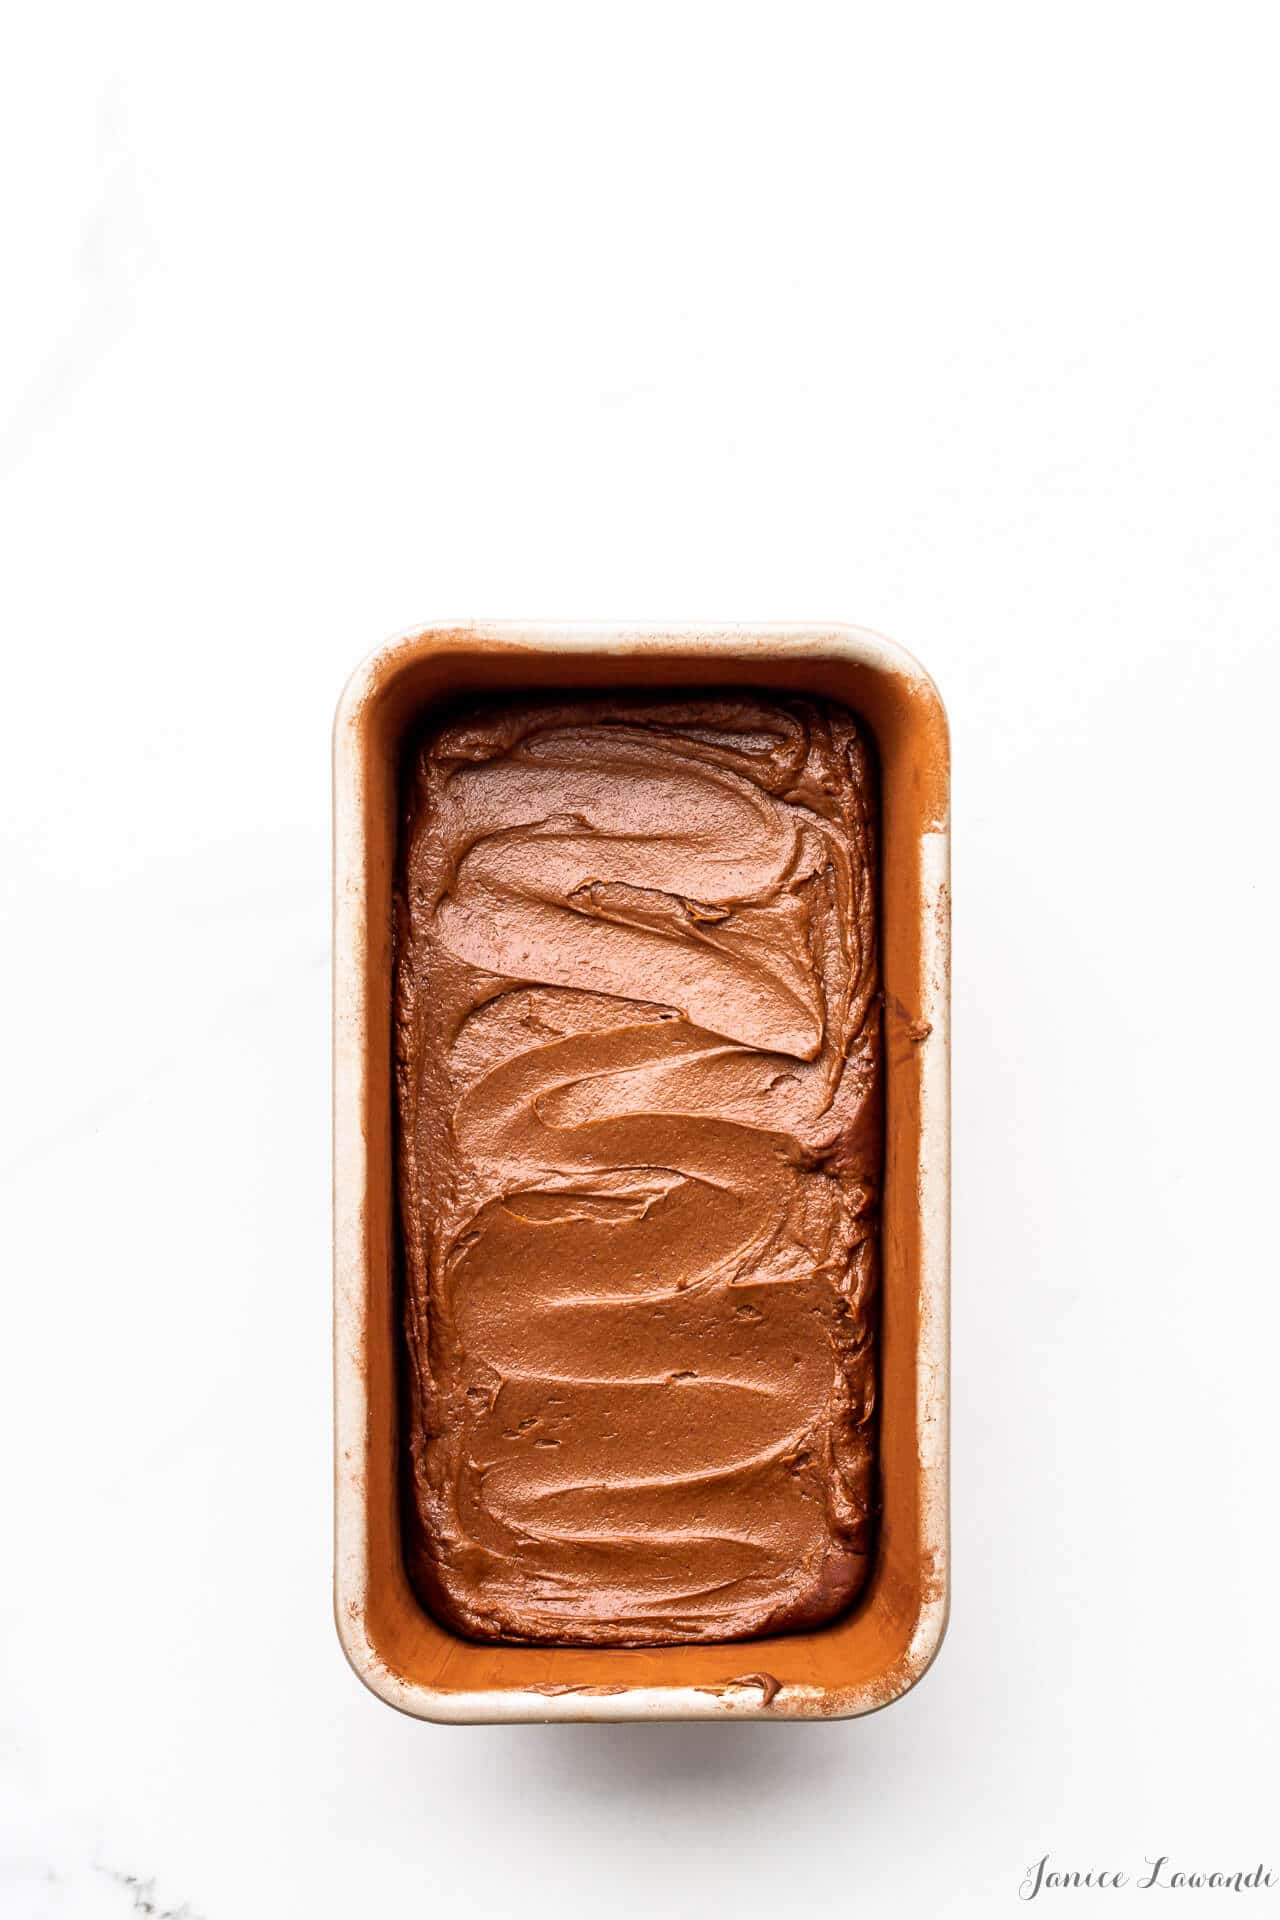 Chocolate cake batter swirled in a loaf cake pan that was prepared by buttering and dusting with cocoa powder to prevent the cake from sticking to the pan as it bakes